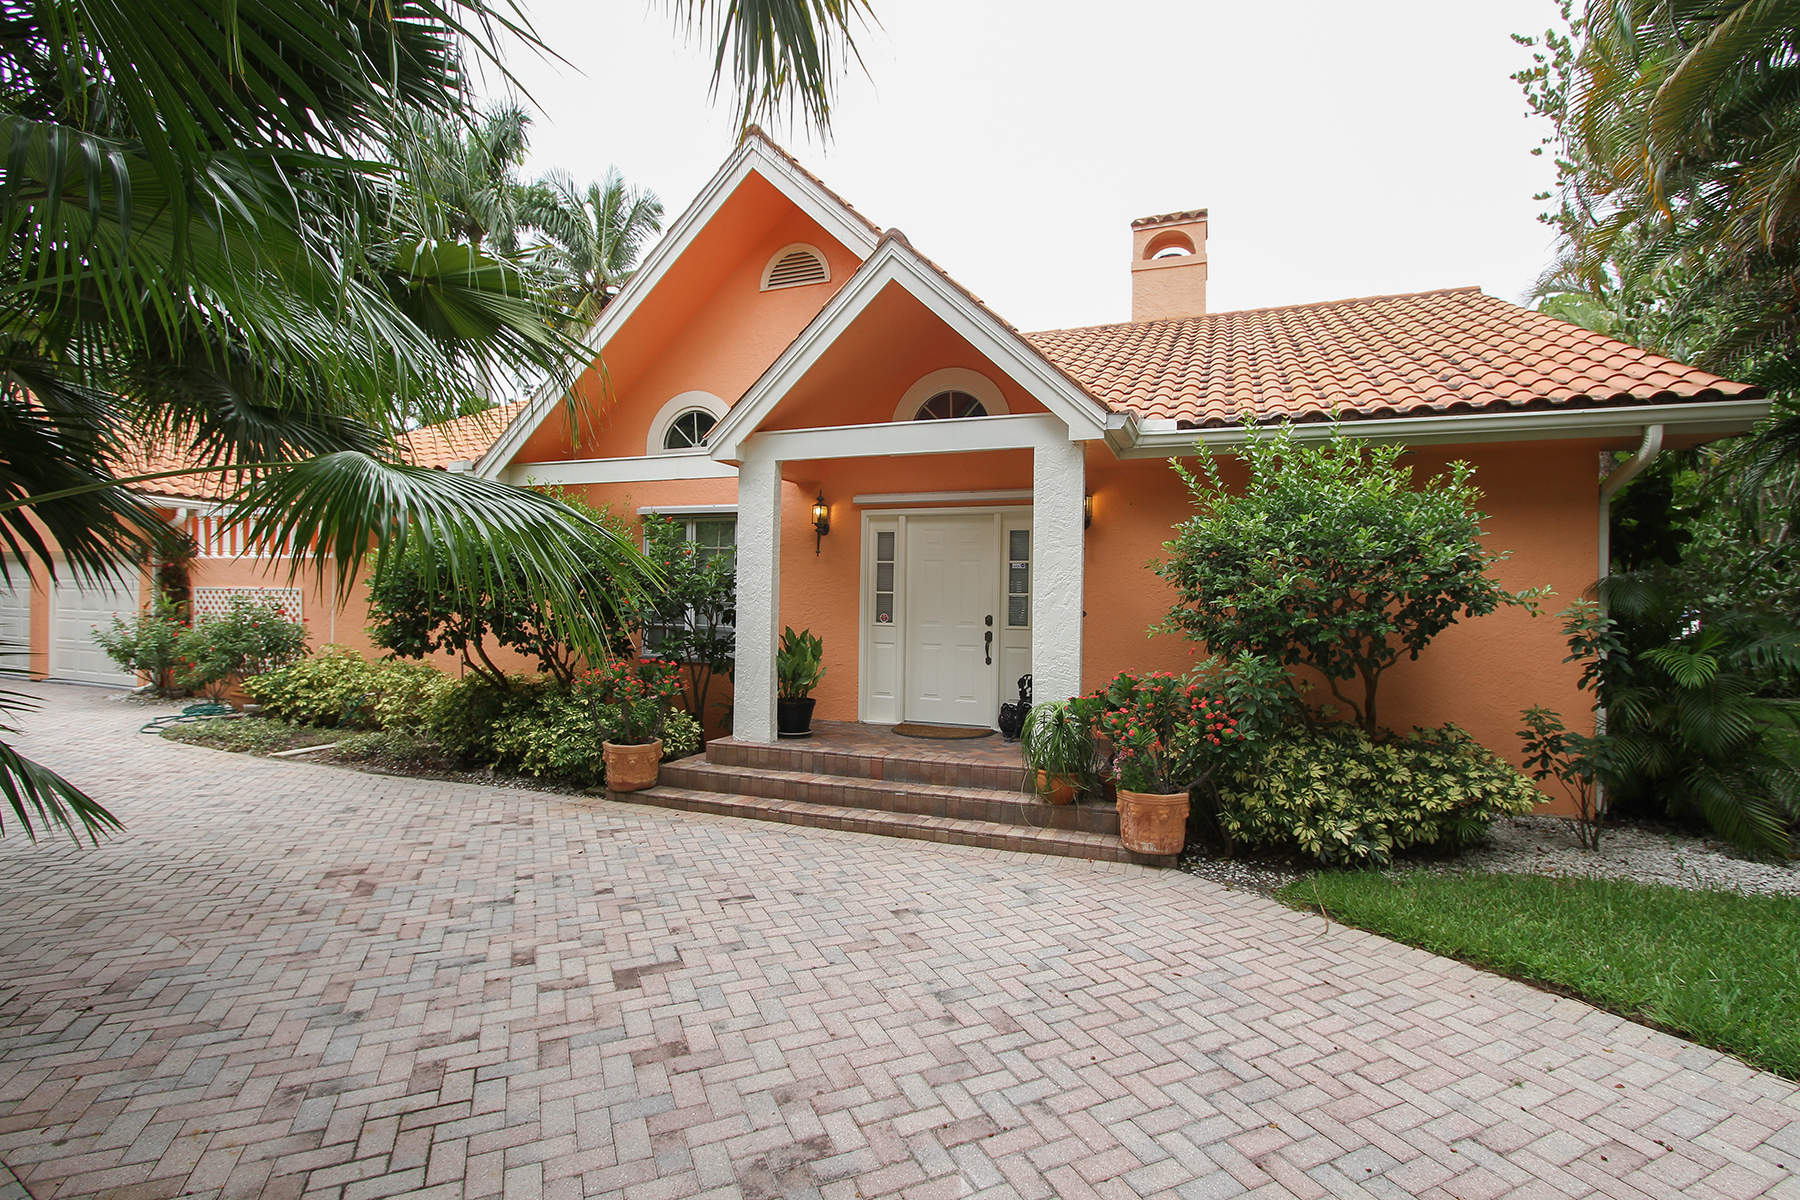 Single Family Home for Rent at AQUALANE SHORES 675 18th Ave S, Naples, Florida 34102 United States